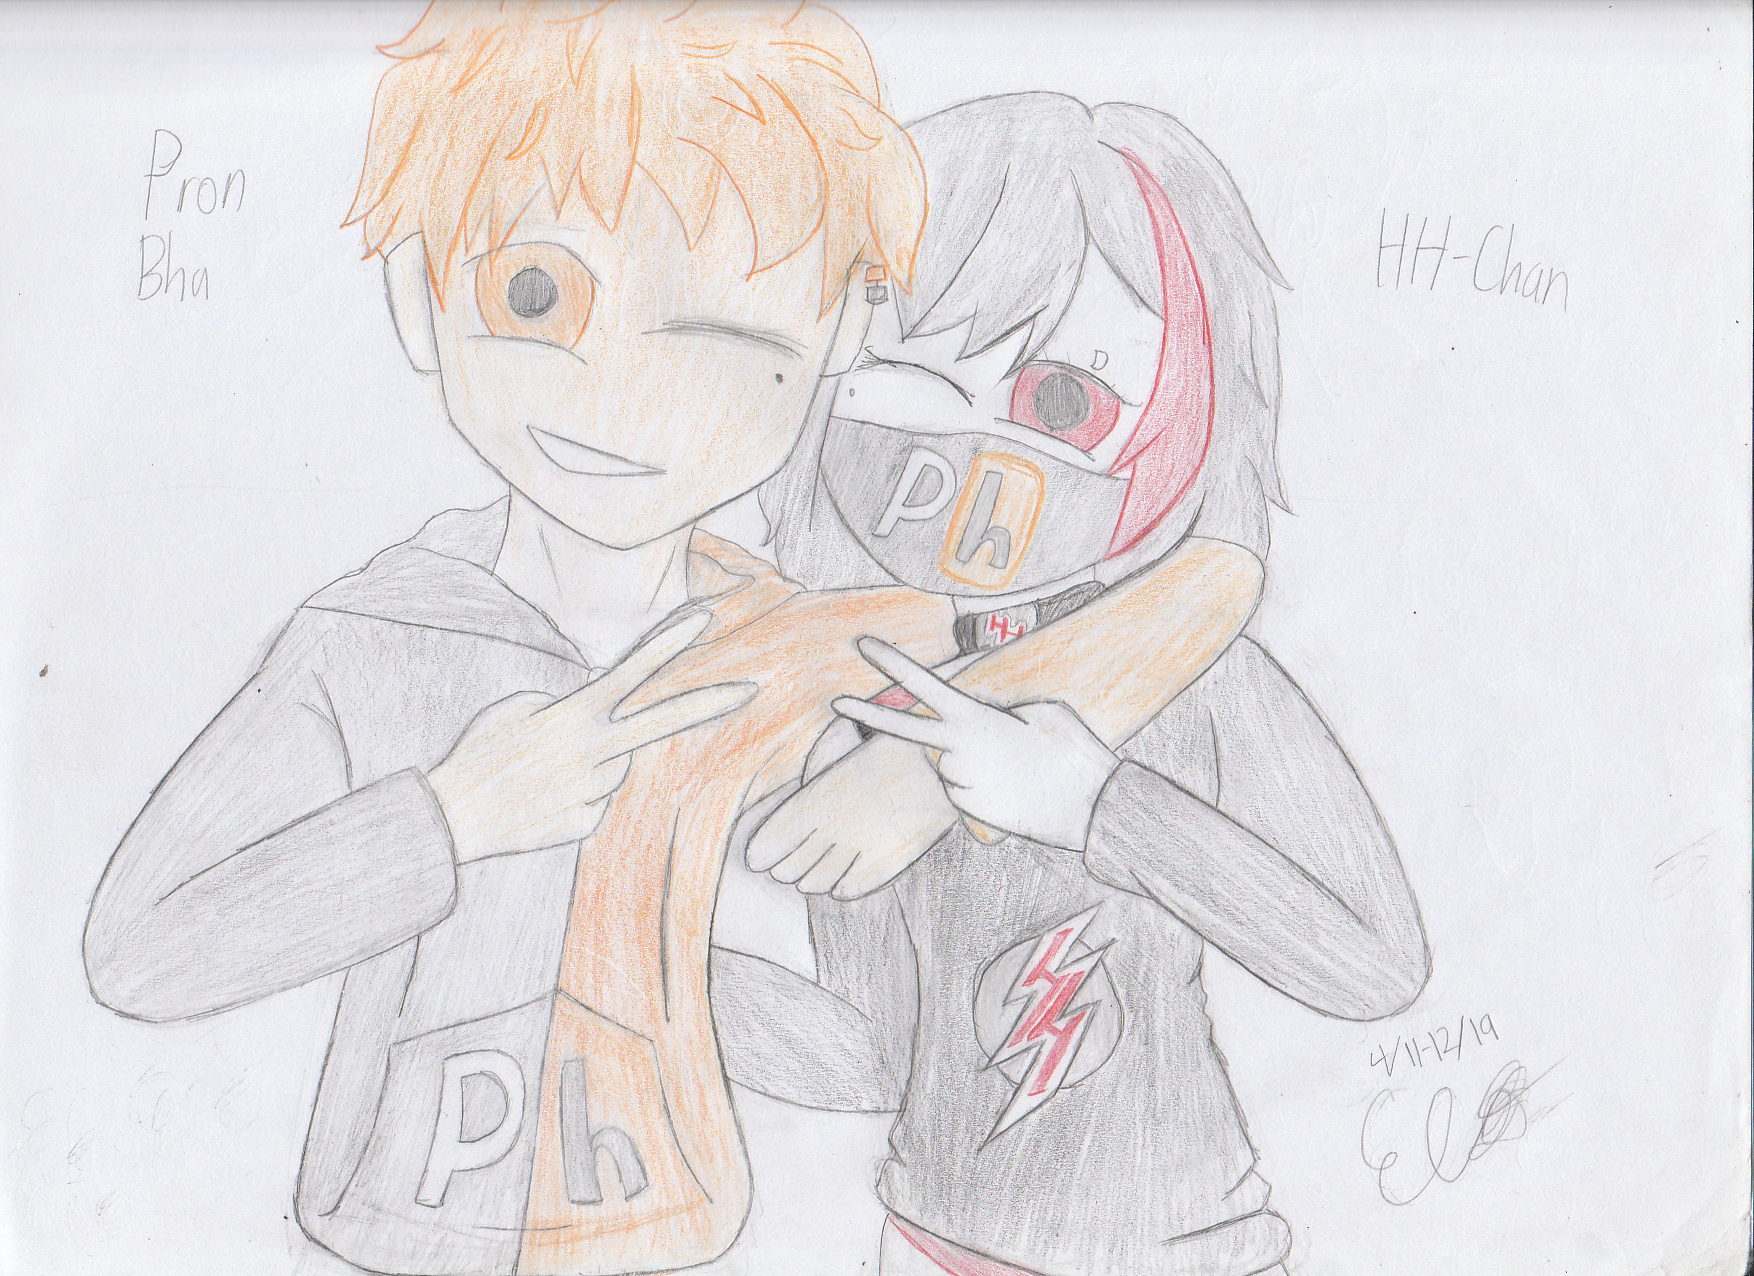 Pron Bhu And Hh Chan By Angrydrawer1118 On Deviantart